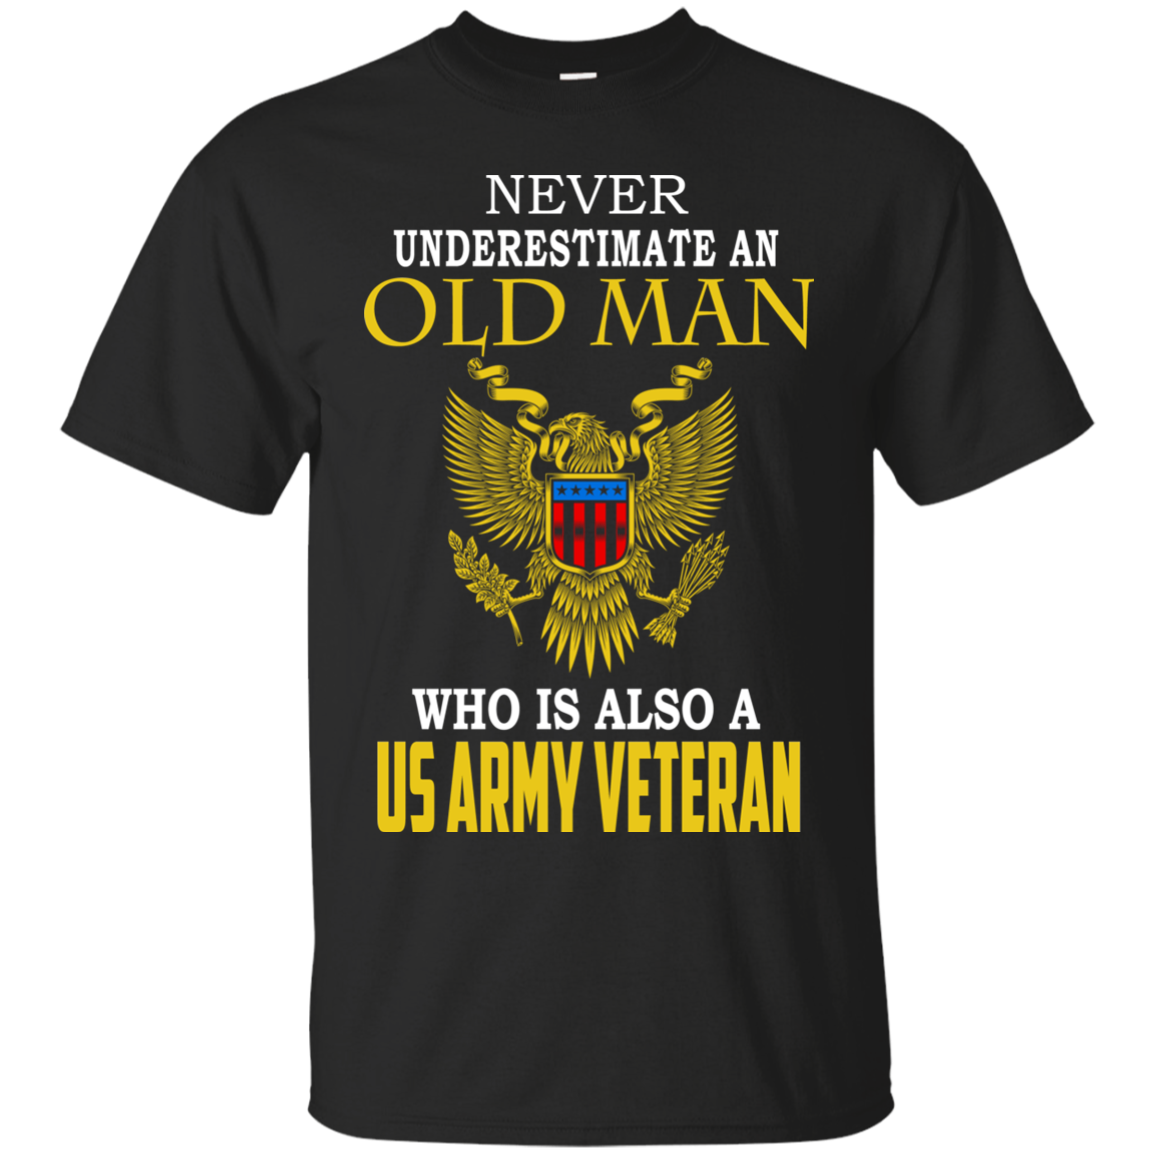 Never Underestimate An Old Man Who Is Also A US Army Veteran Shirts Hoodies Sweatshirts